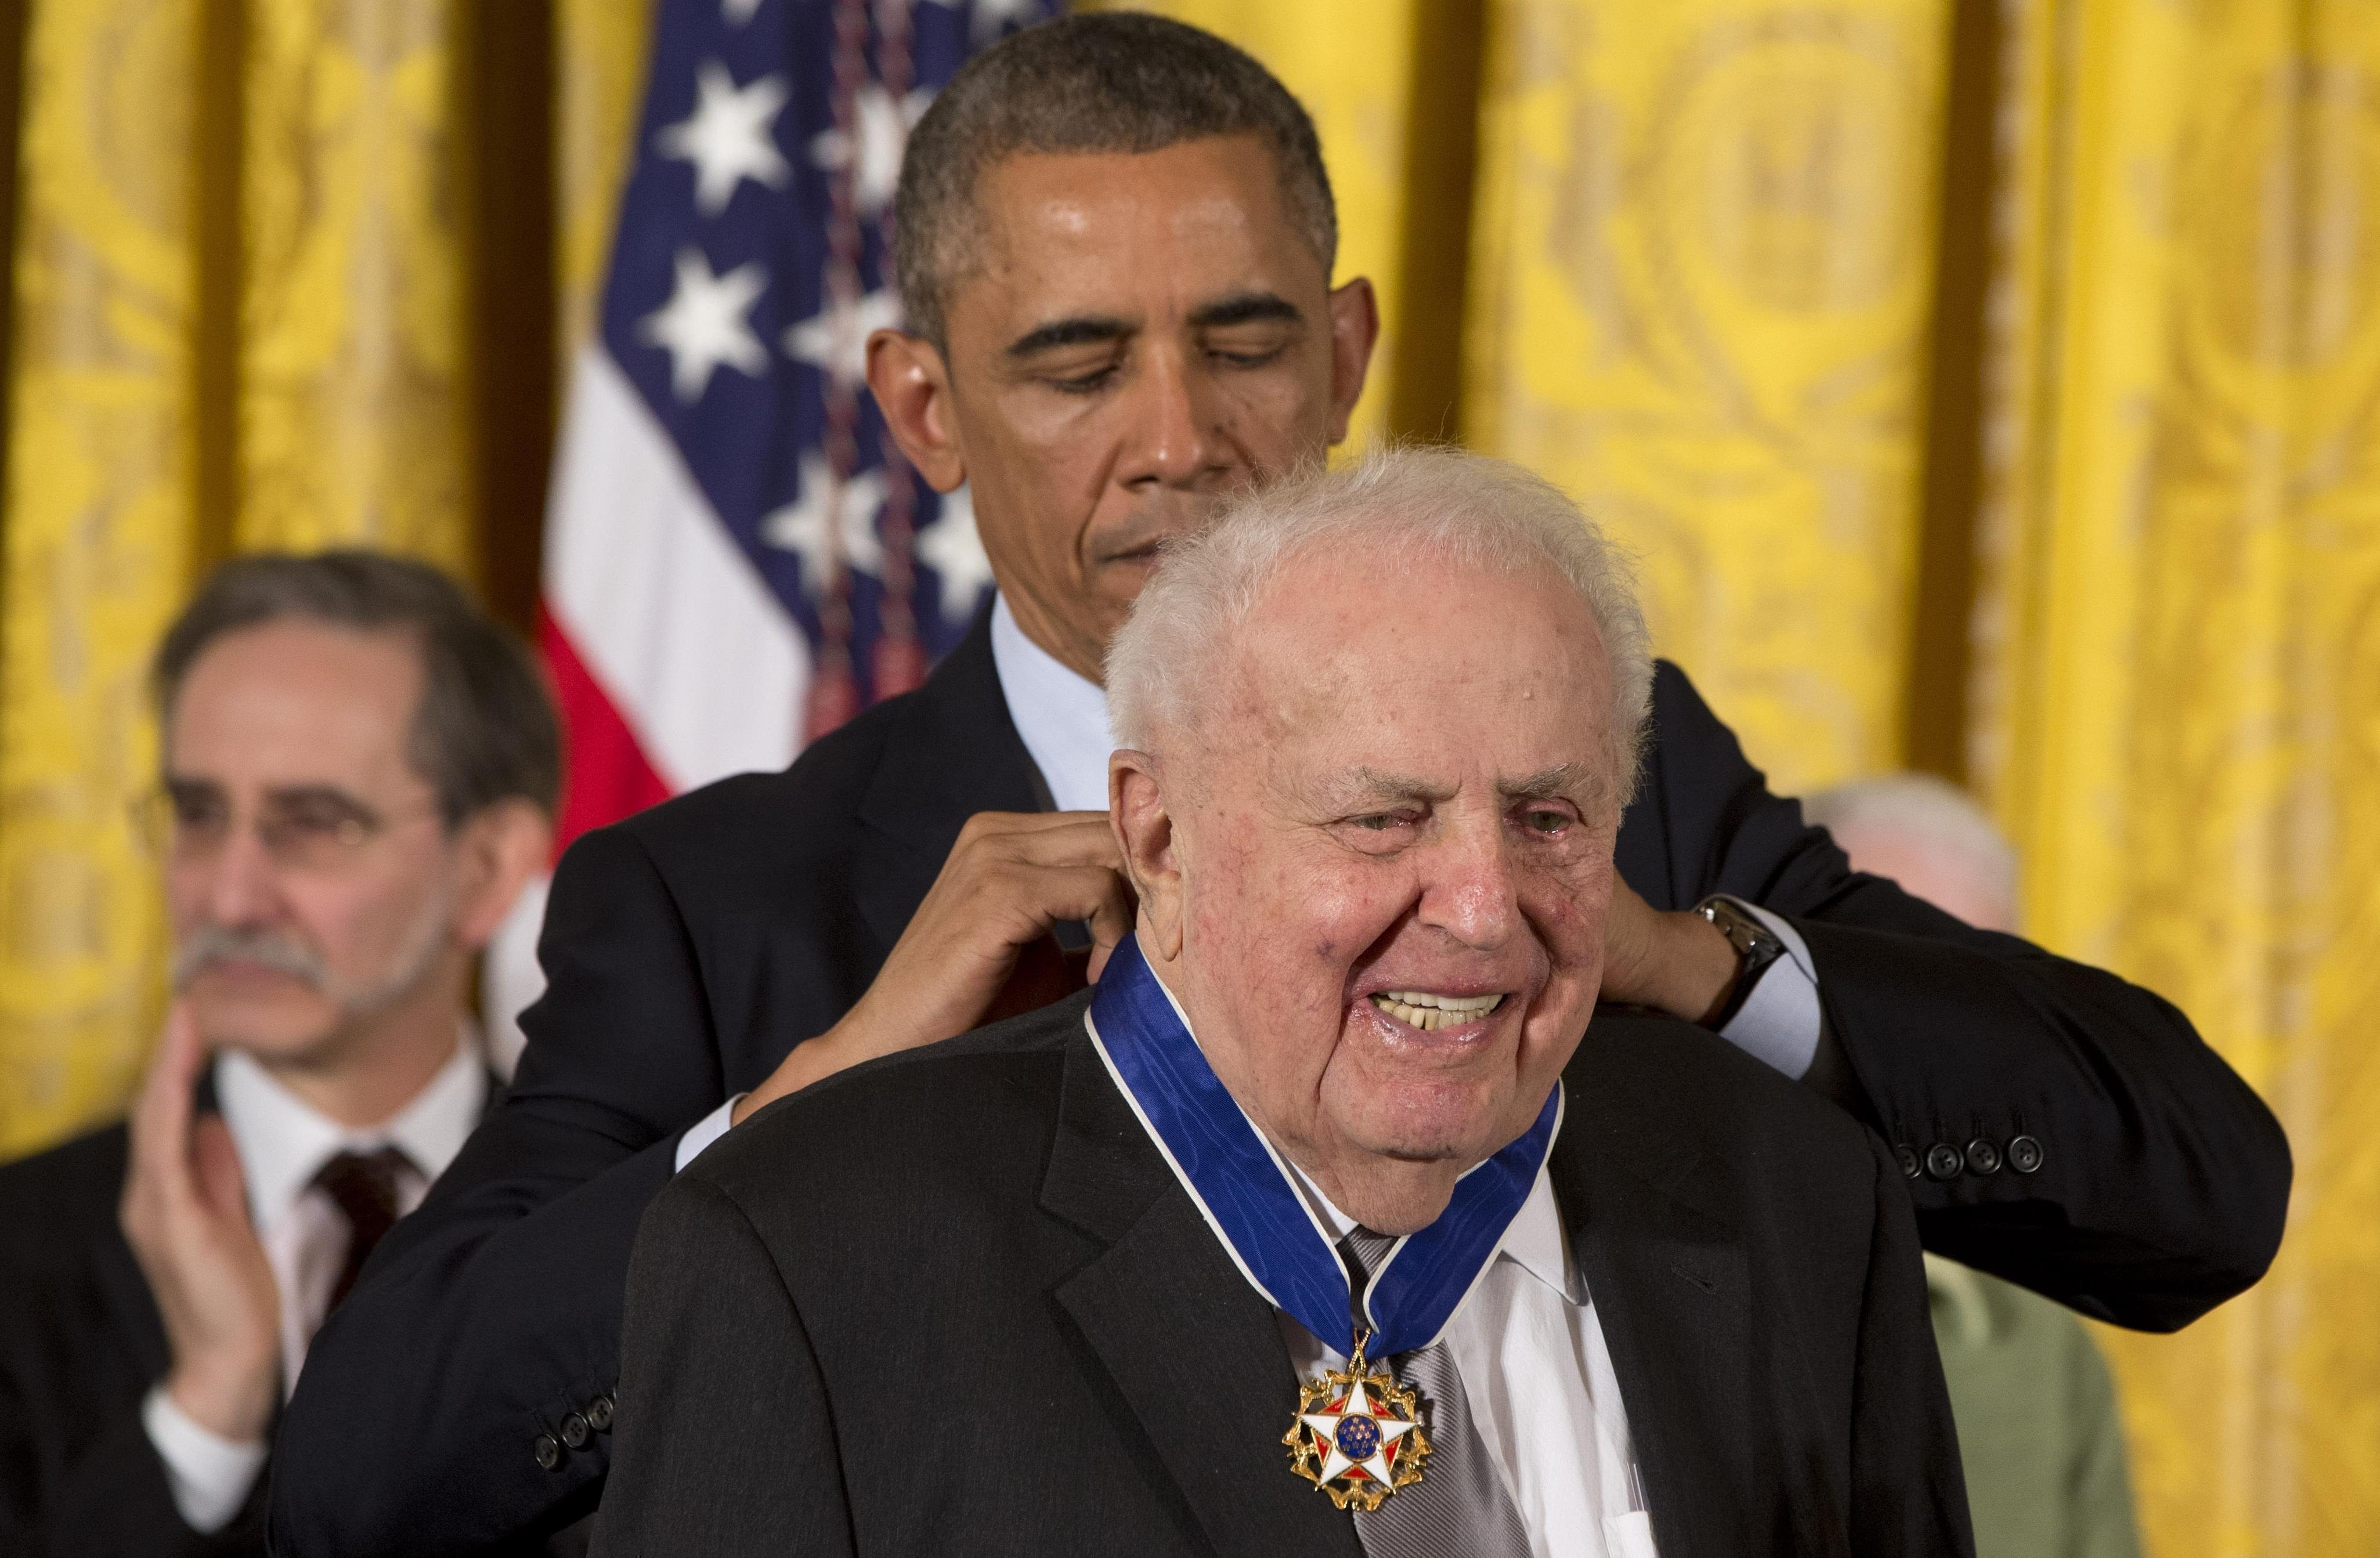 President Barack Obama awards former Illinois Rep. Abner Mikva the Presidential Medal of Freedom, Monday, Nov. 24, 2014, during a ceremony in the East Room of the White House in Washington.